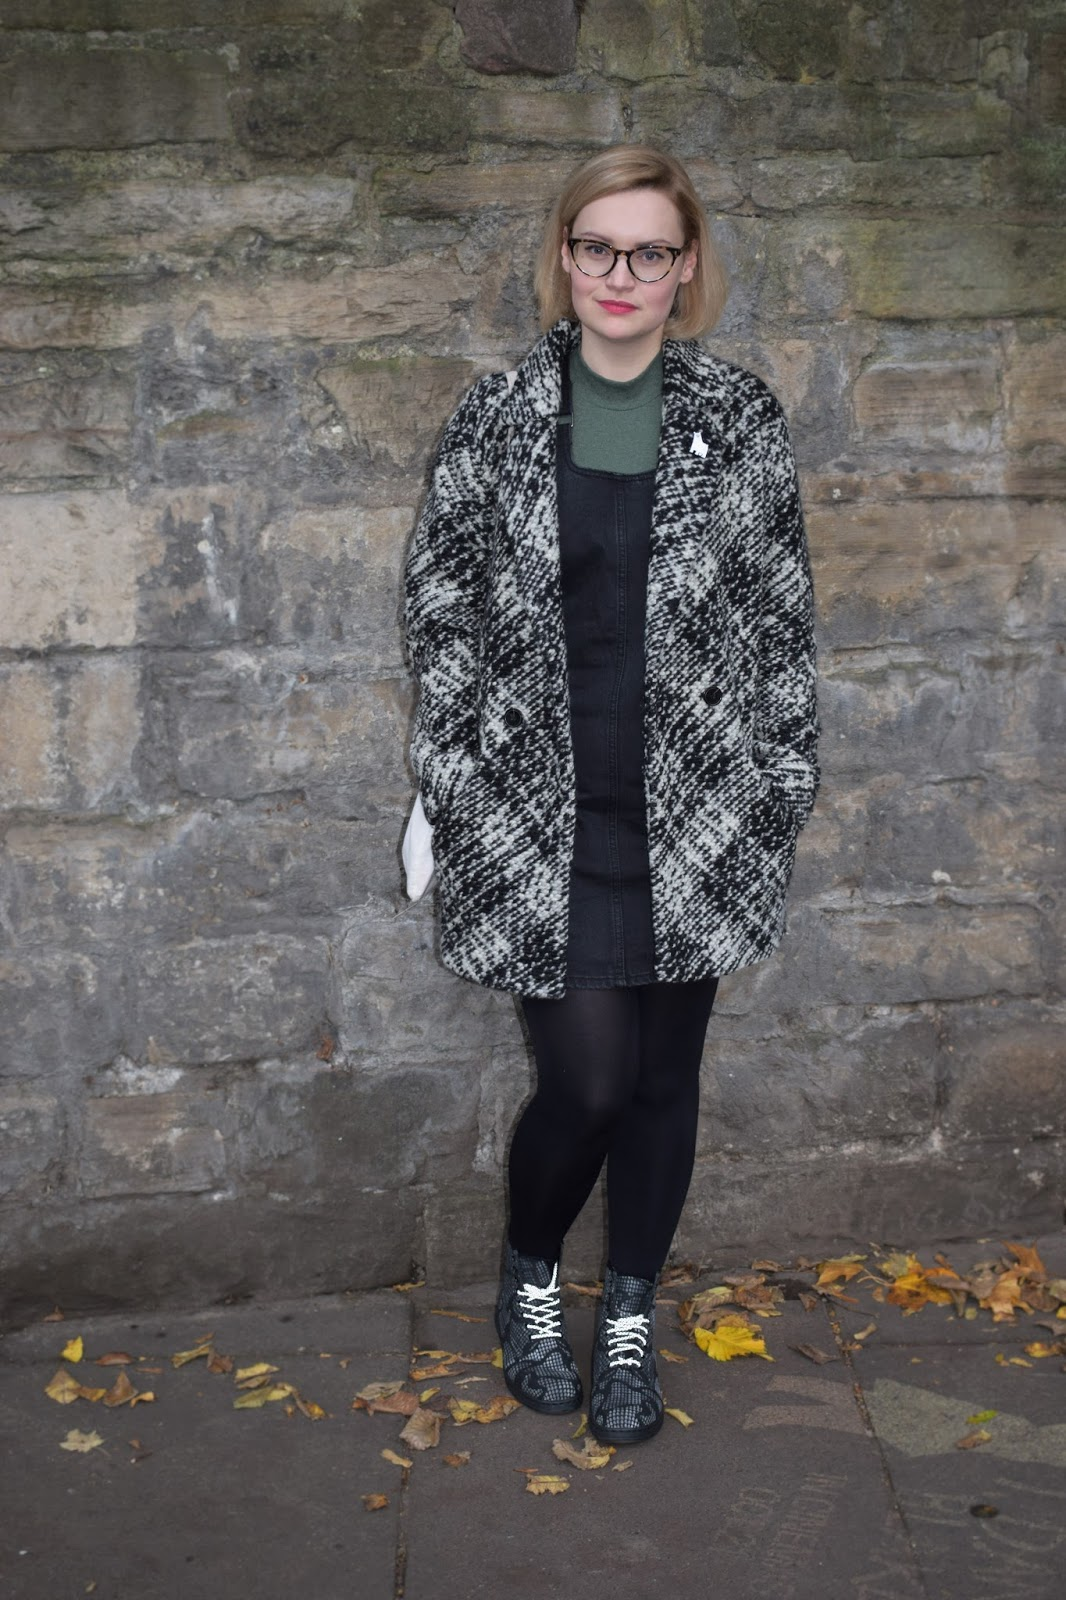 Dr Martens Newton reflective boots, Scottish winter style, Halloween collection, denim pinafore trend, Scottish style blogger, UK fashion trends, dressing for cold weather in Scotland, Urban Outfitters black and white jacket, monochrome minimal style